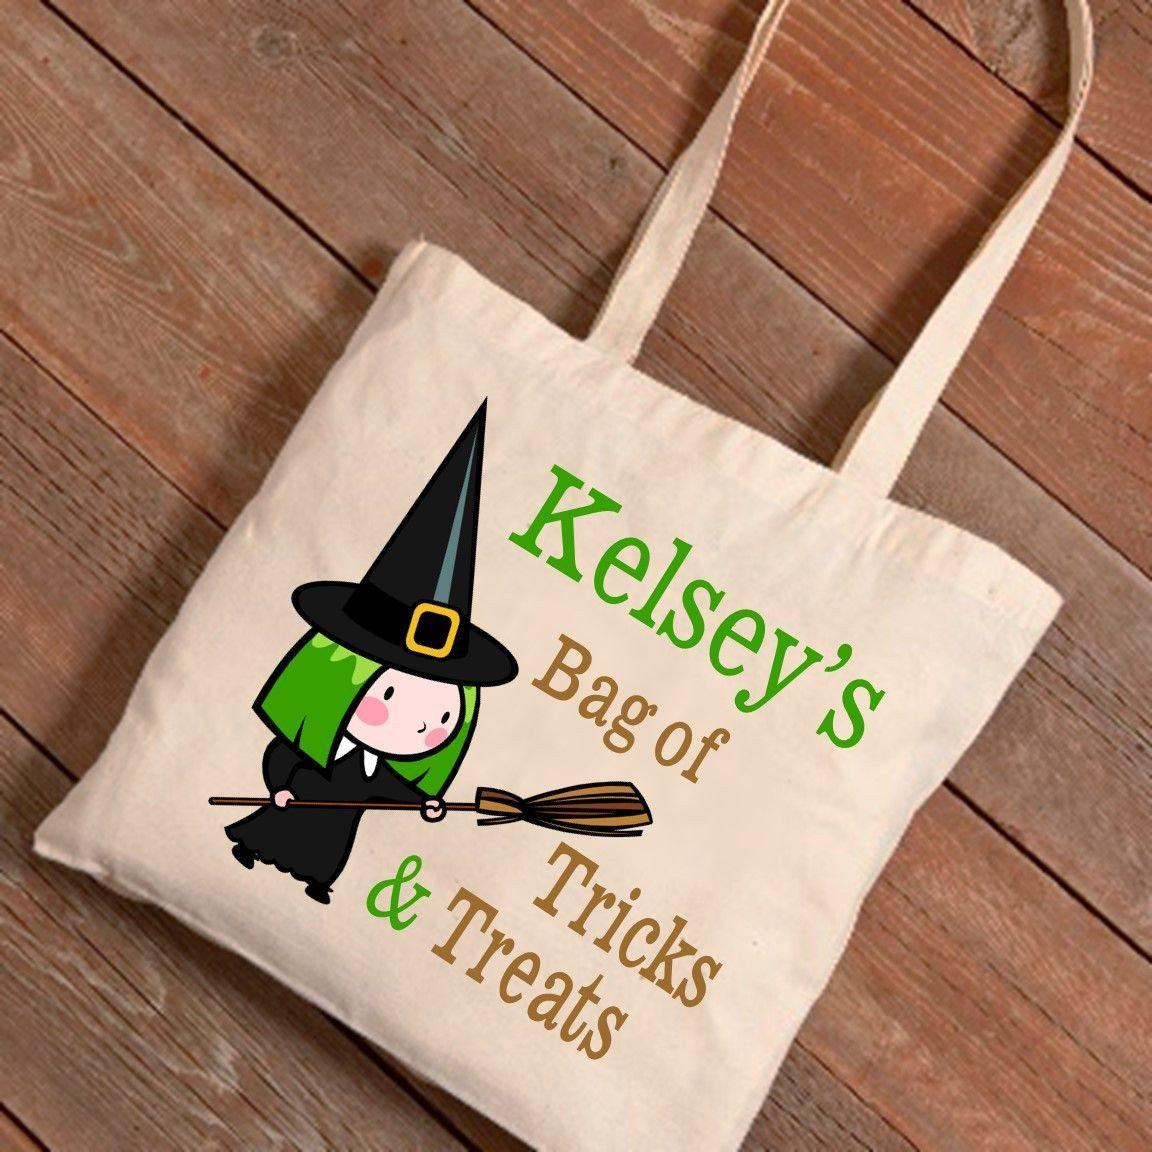 Personalized-Halloween-Trick-or-Treat-Canvas-Bags